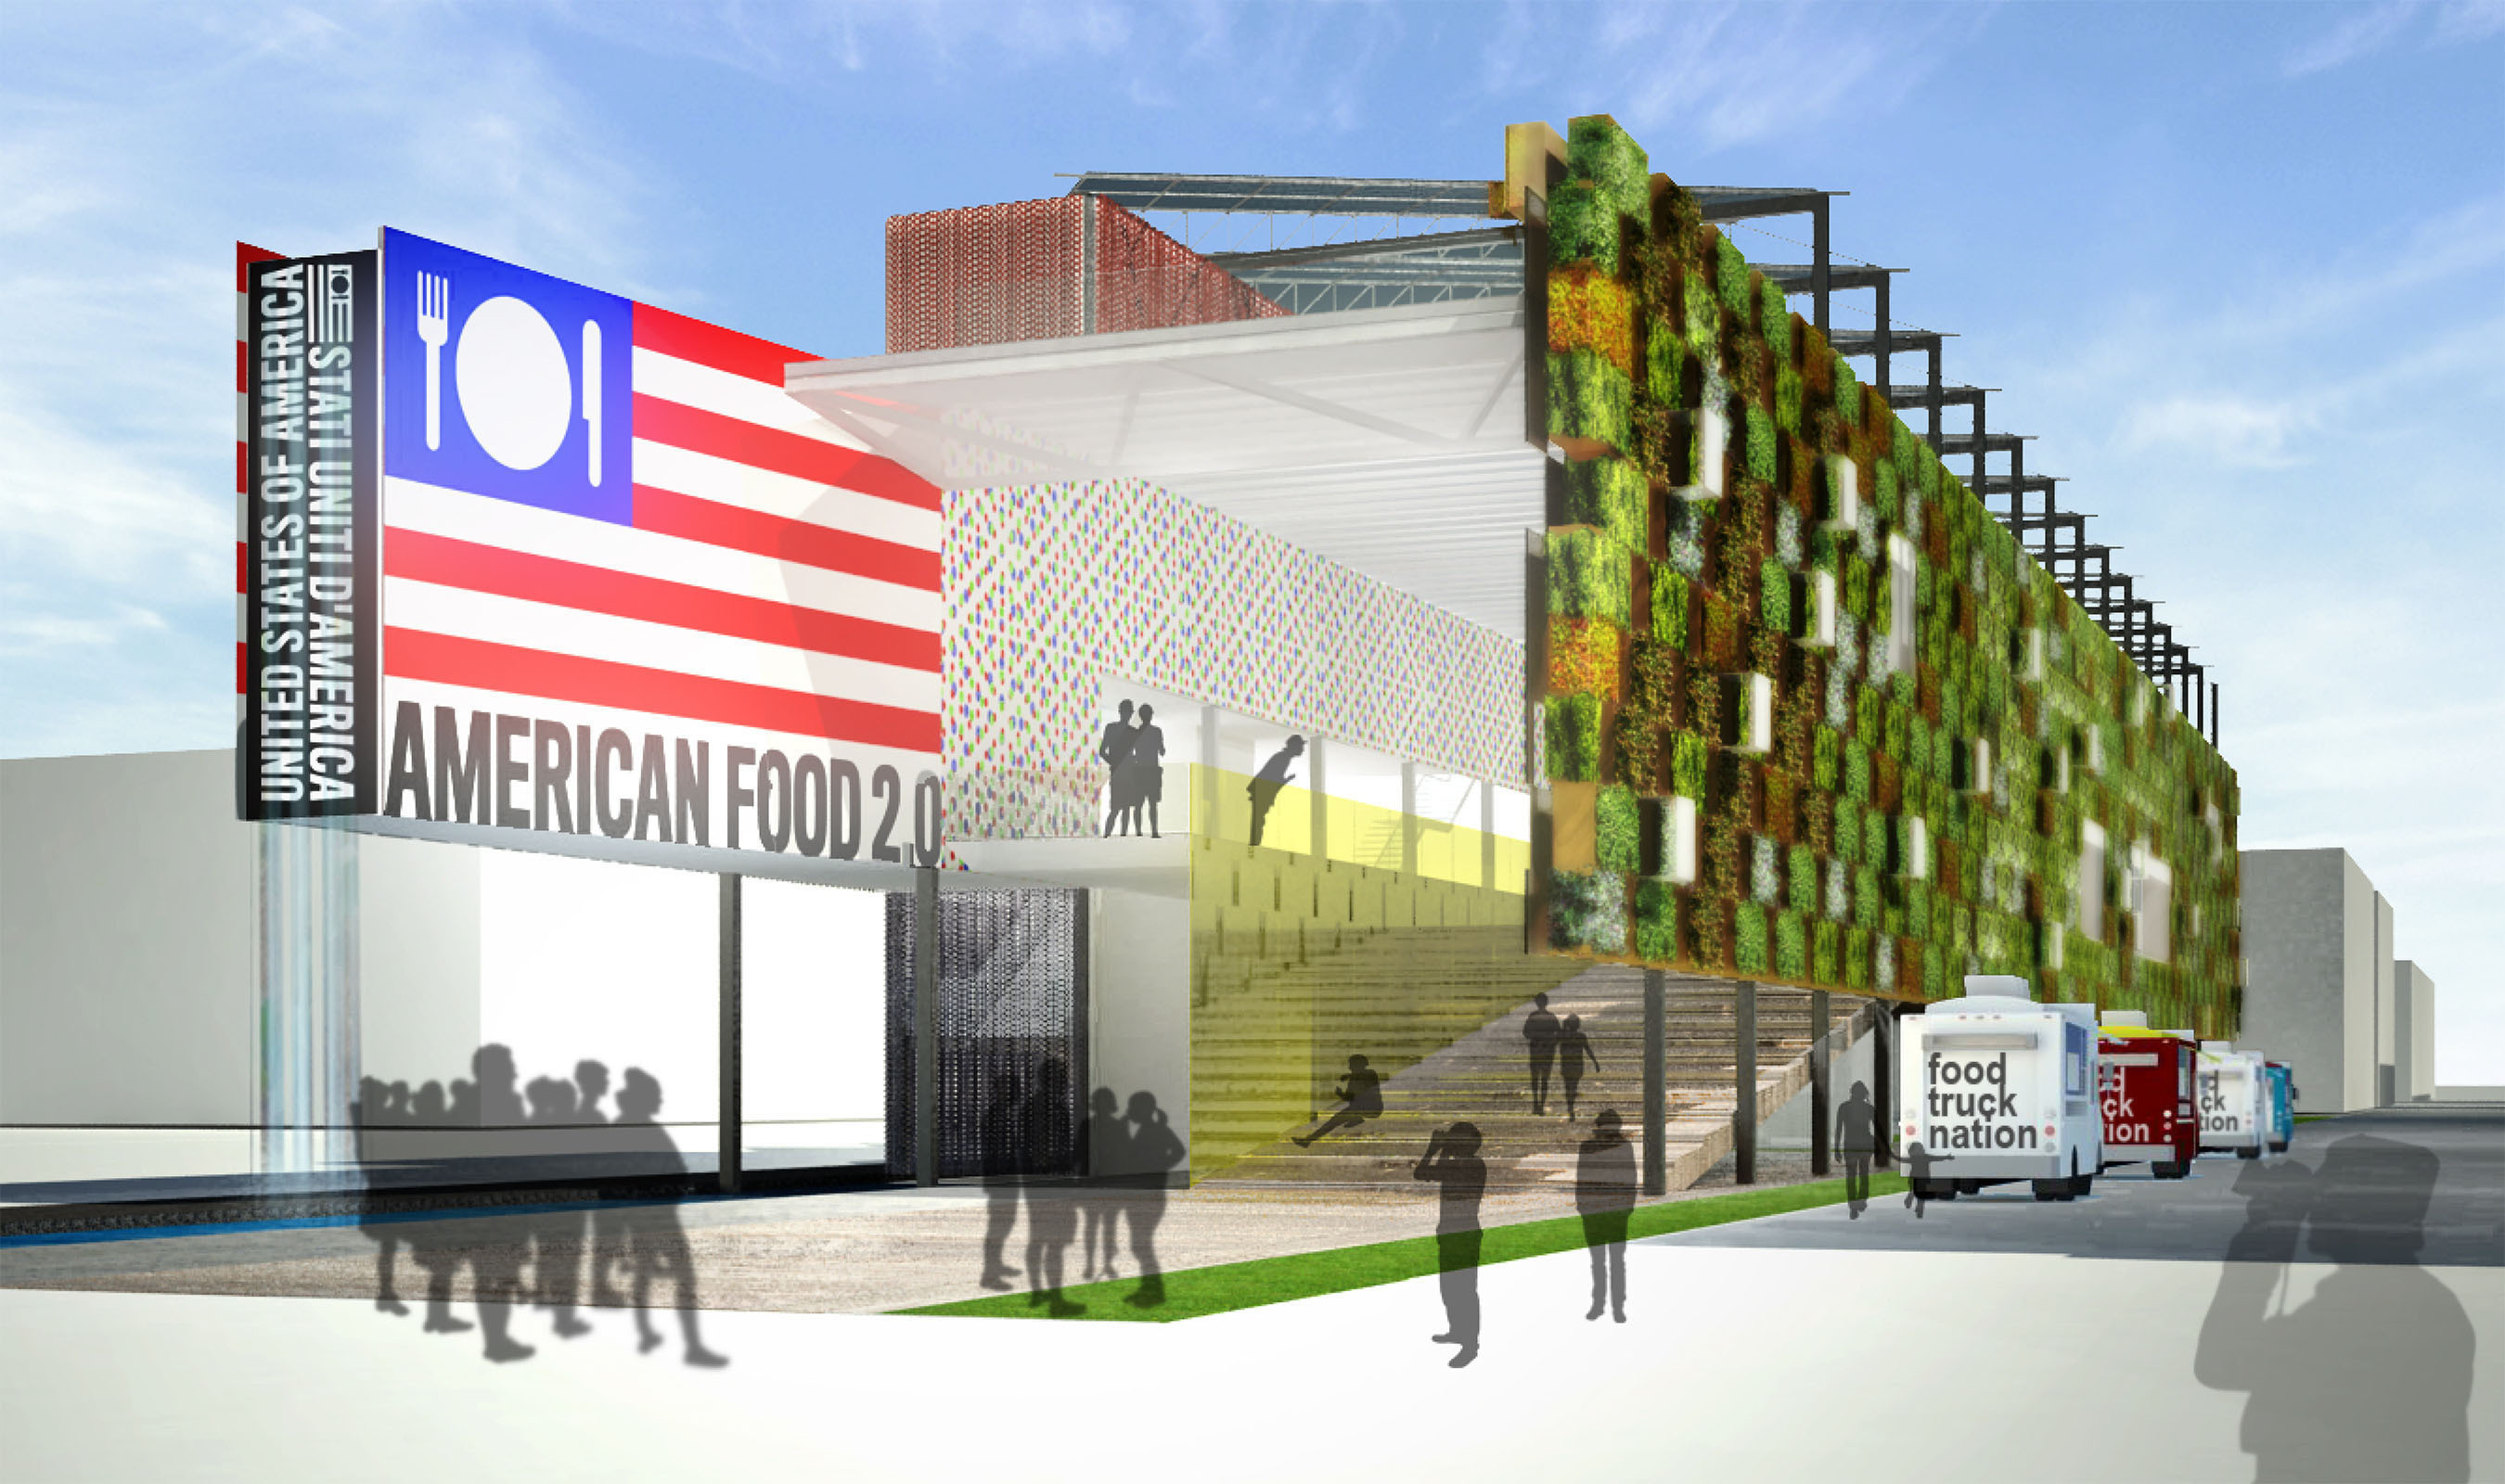 Rendering of the American Food 2.0 USA Pavilion at Expo Milano 2015; Biber Architects for Friends of the U.S. Pavilion Milano 2015 (c)2014. (PRNewsFoto/Friends of the U.S. Pavilion Milano 2015) (PRNewsFoto/FRIENDS OF US PAVILION MILANO)